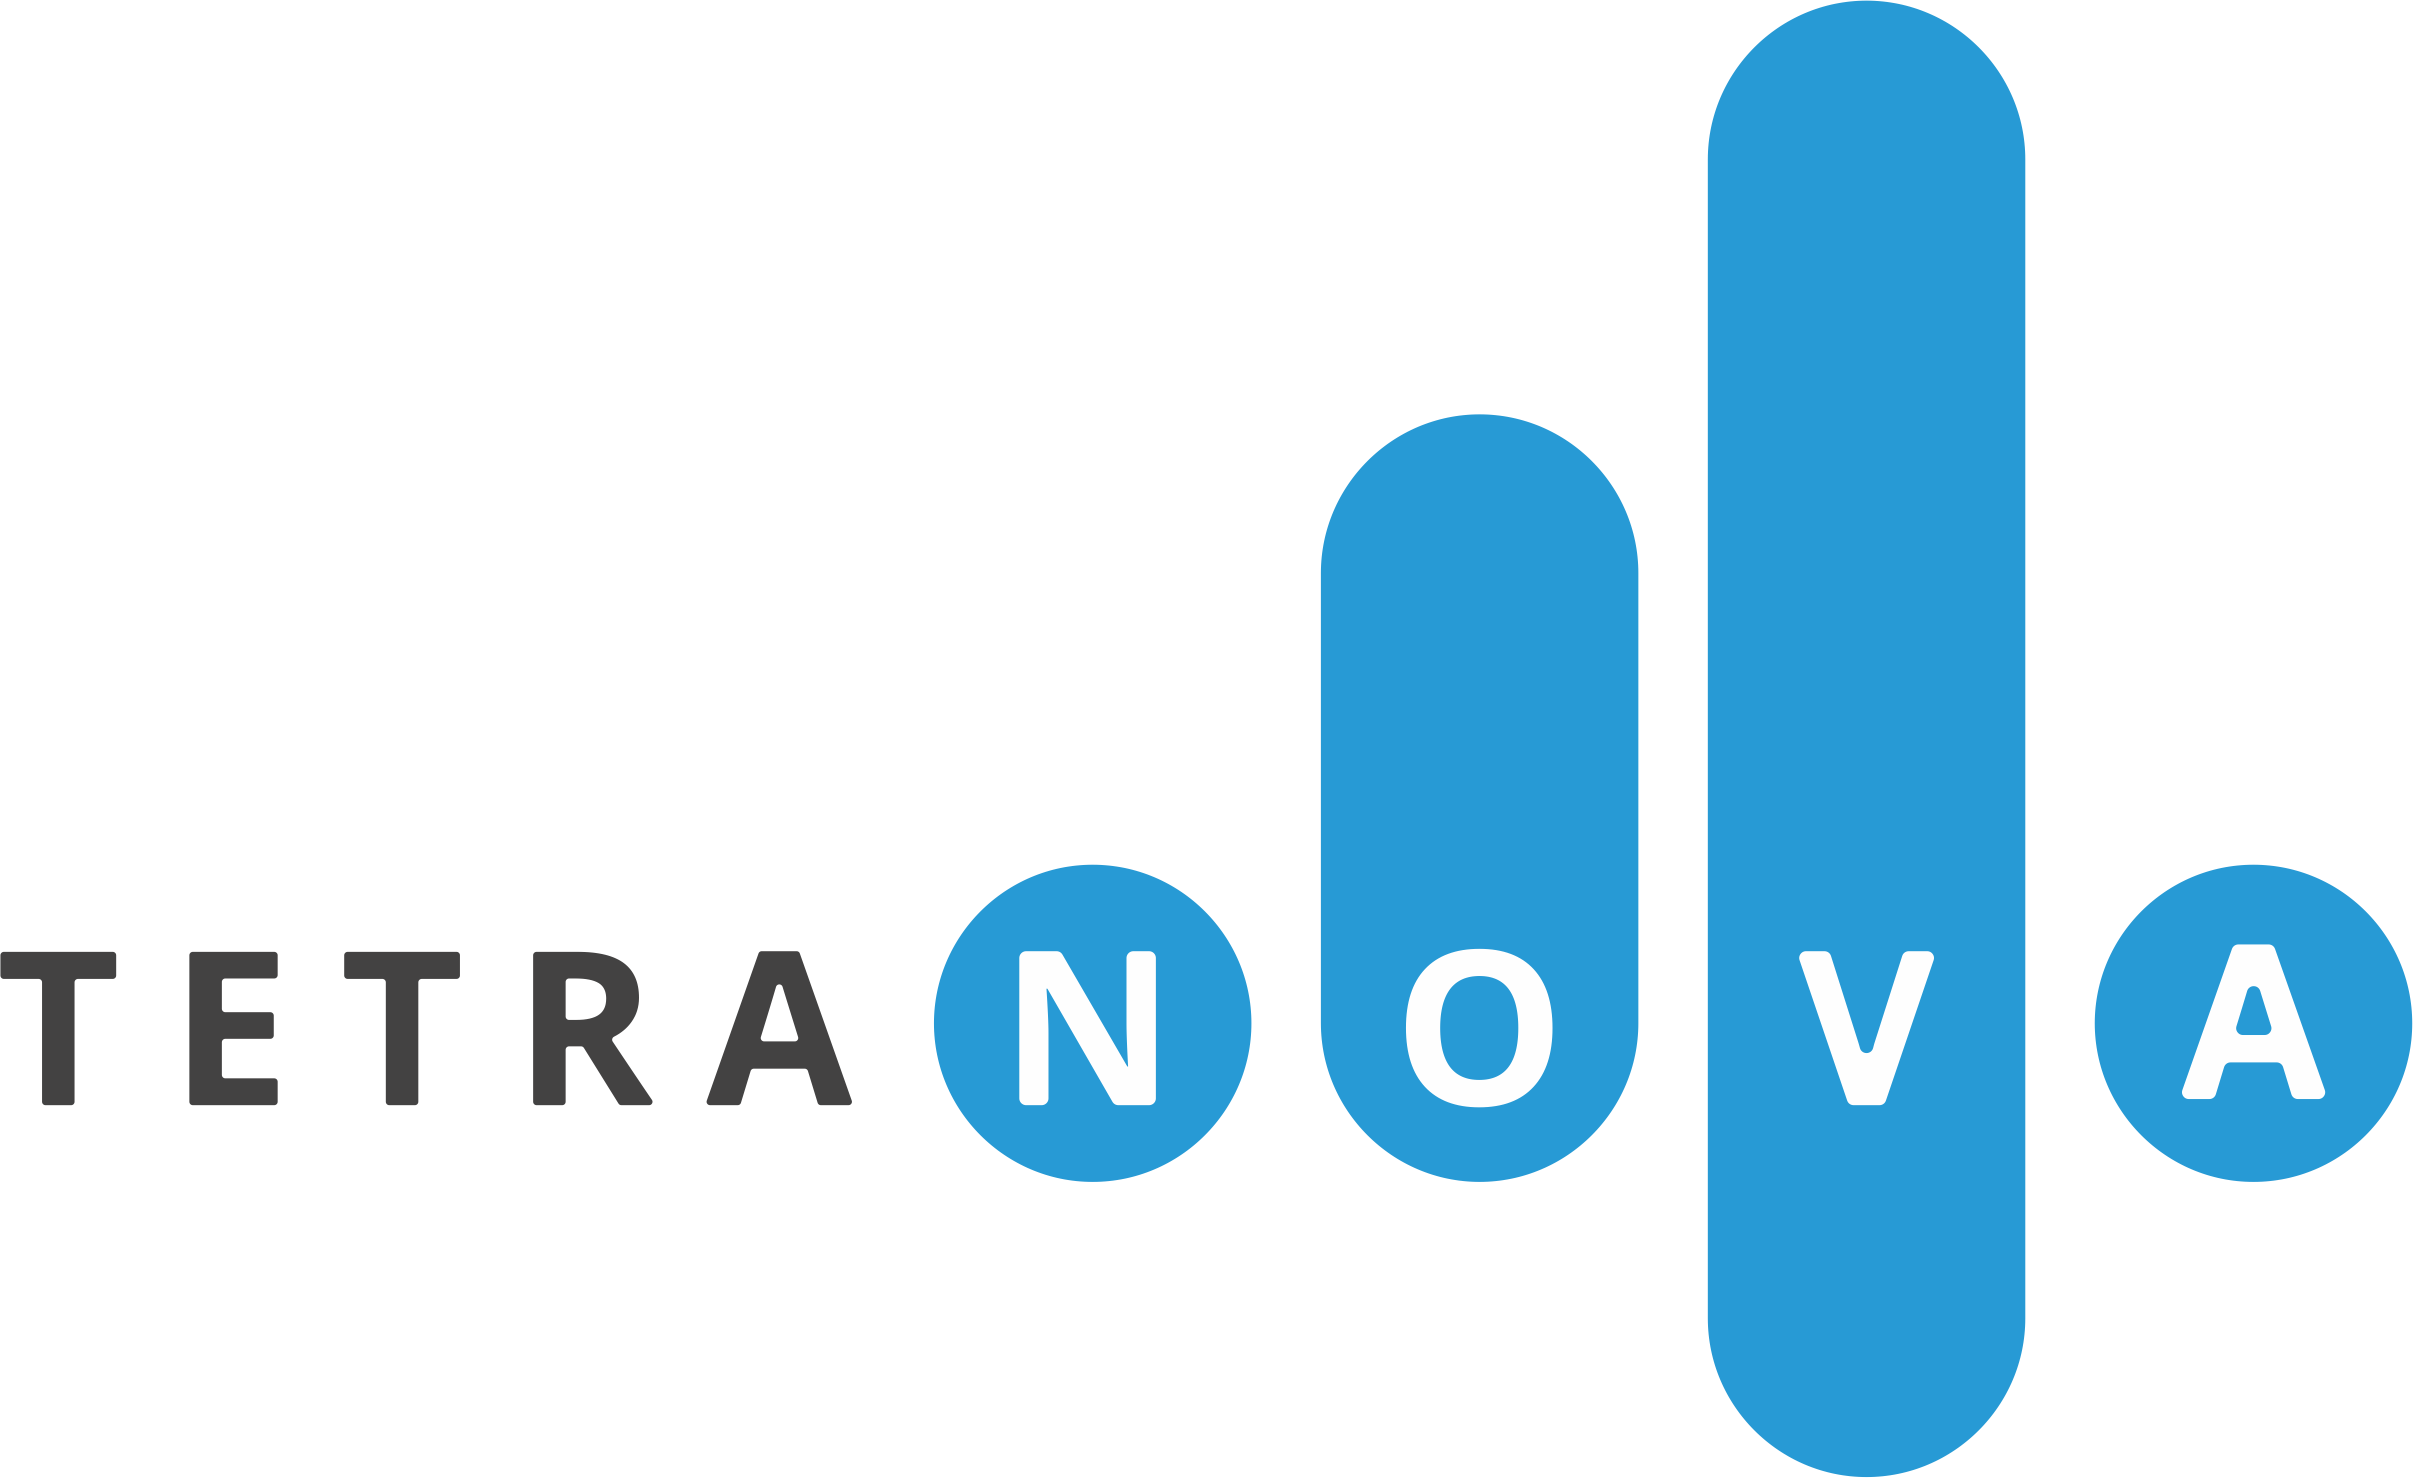 Tetranova Ltd partner logo